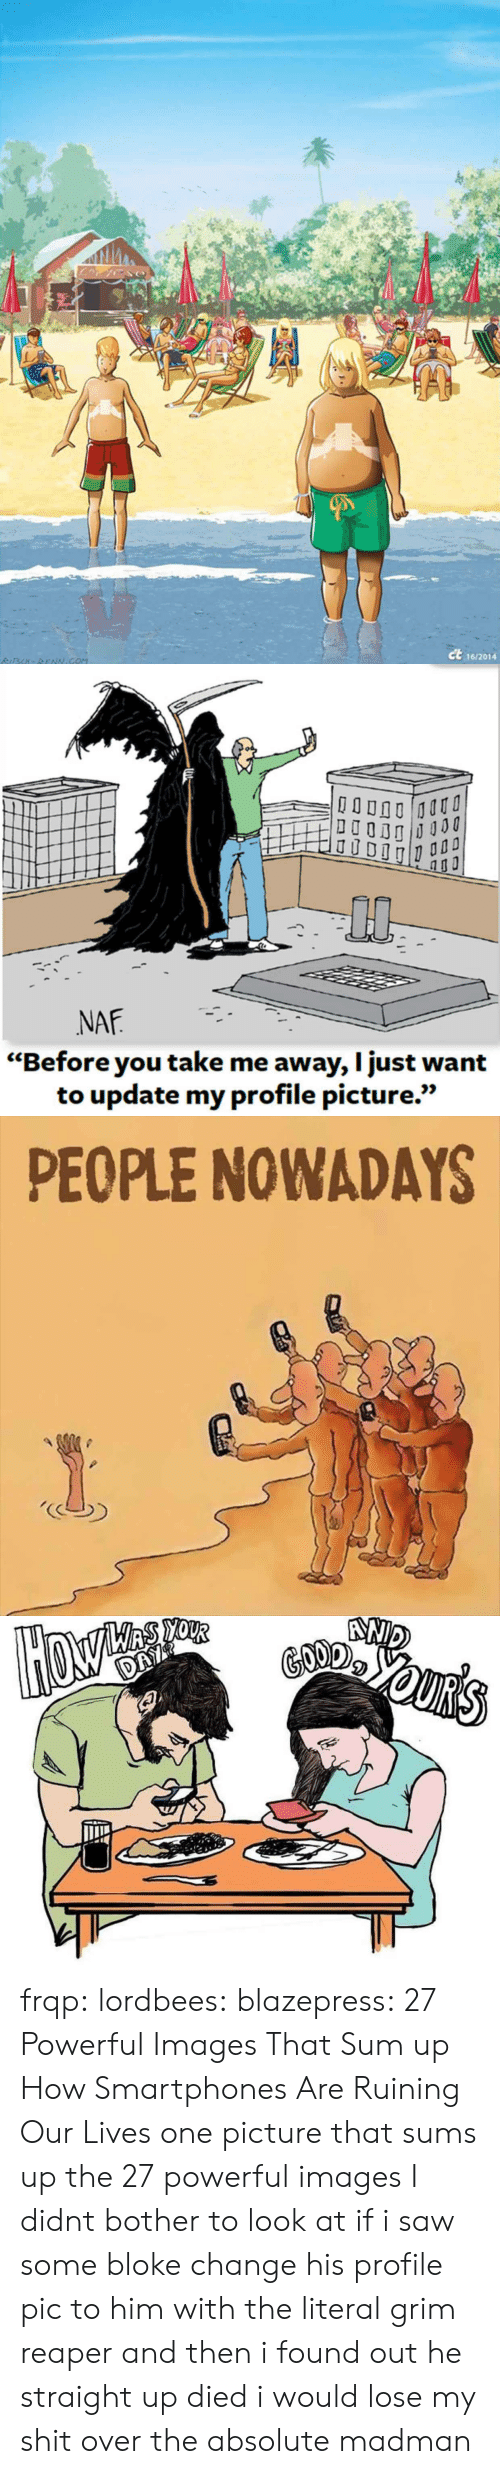 "Saw, Tumblr, and Blog: ct  16/2014   0p  NAF  ""Before you take me away, I just want  to update my profile picture.""  เเว   PEOPLE NOWADAYS frqp:  lordbees:  blazepress:  27 Powerful Images That Sum up How Smartphones Are Ruining Our Lives   one picture that sums up the 27 powerful images I didnt bother to look at   if i saw some bloke change his profile pic to him with the literal grim reaper and then i found out he straight up died i would lose my shit over the absolute madman"